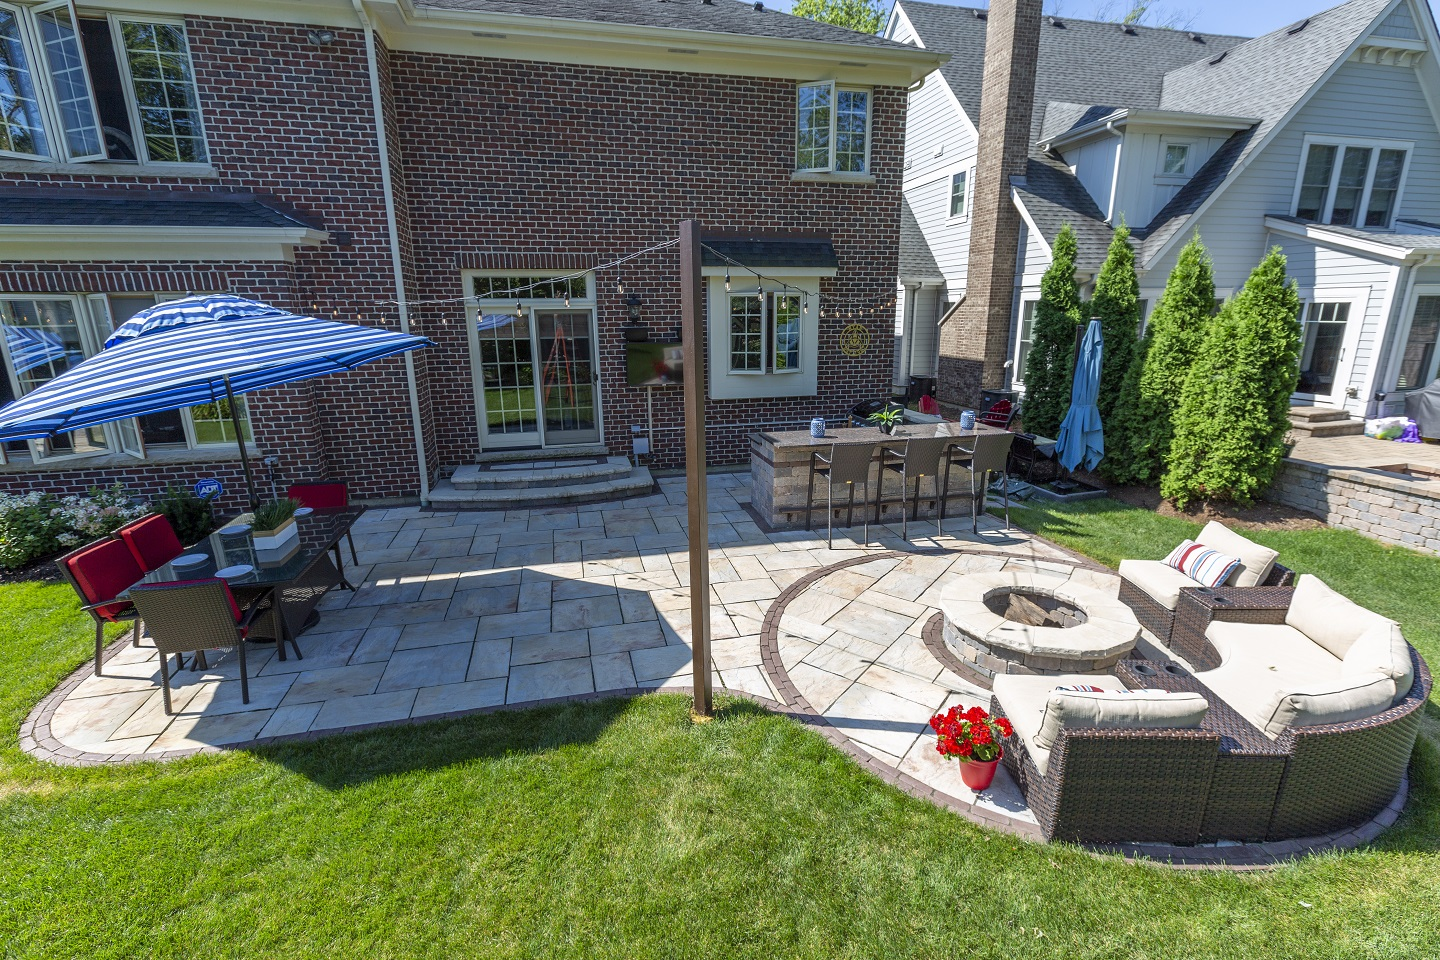 Outdoor fireplace in Hinsdale IL - brick Paving